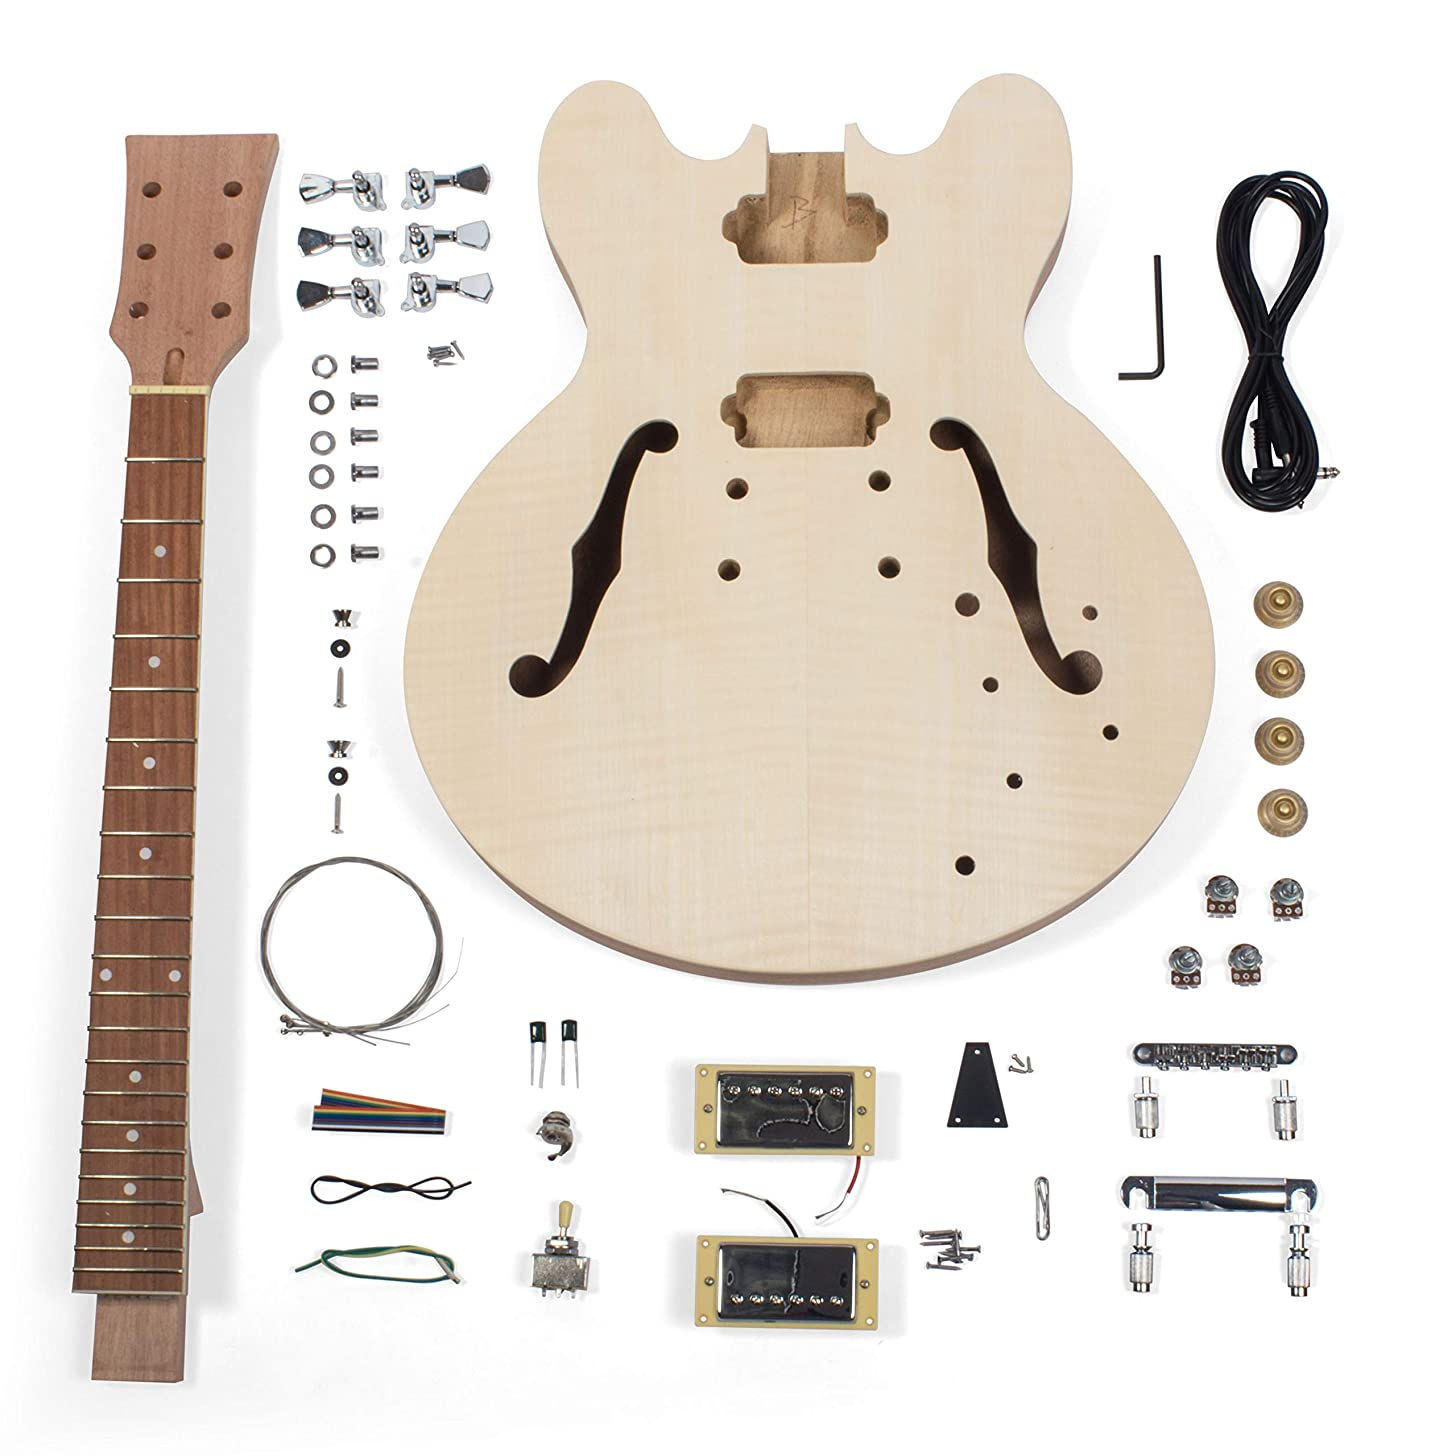 StewMac Build Your Own DIY 335-Style Electric Guitar Kit